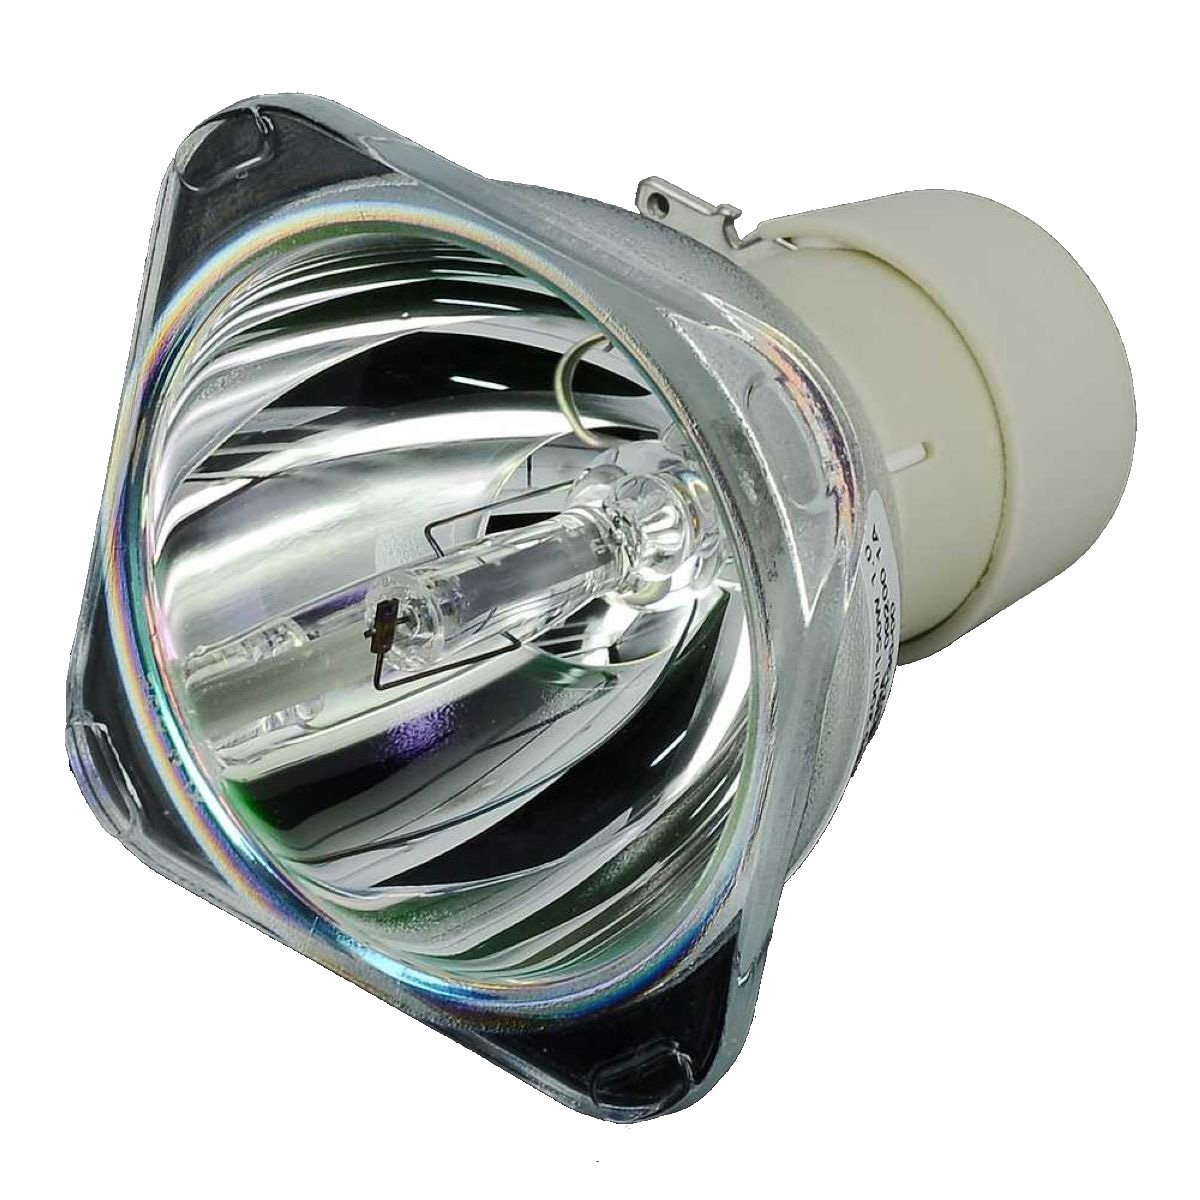 ФОТО Original Bare Bulb NP18LP 60003128 for NEC NP-V300W NP-V300X NP-V300WG NP-V300X NP-V281W Projector Lamp Bulb Without Housing